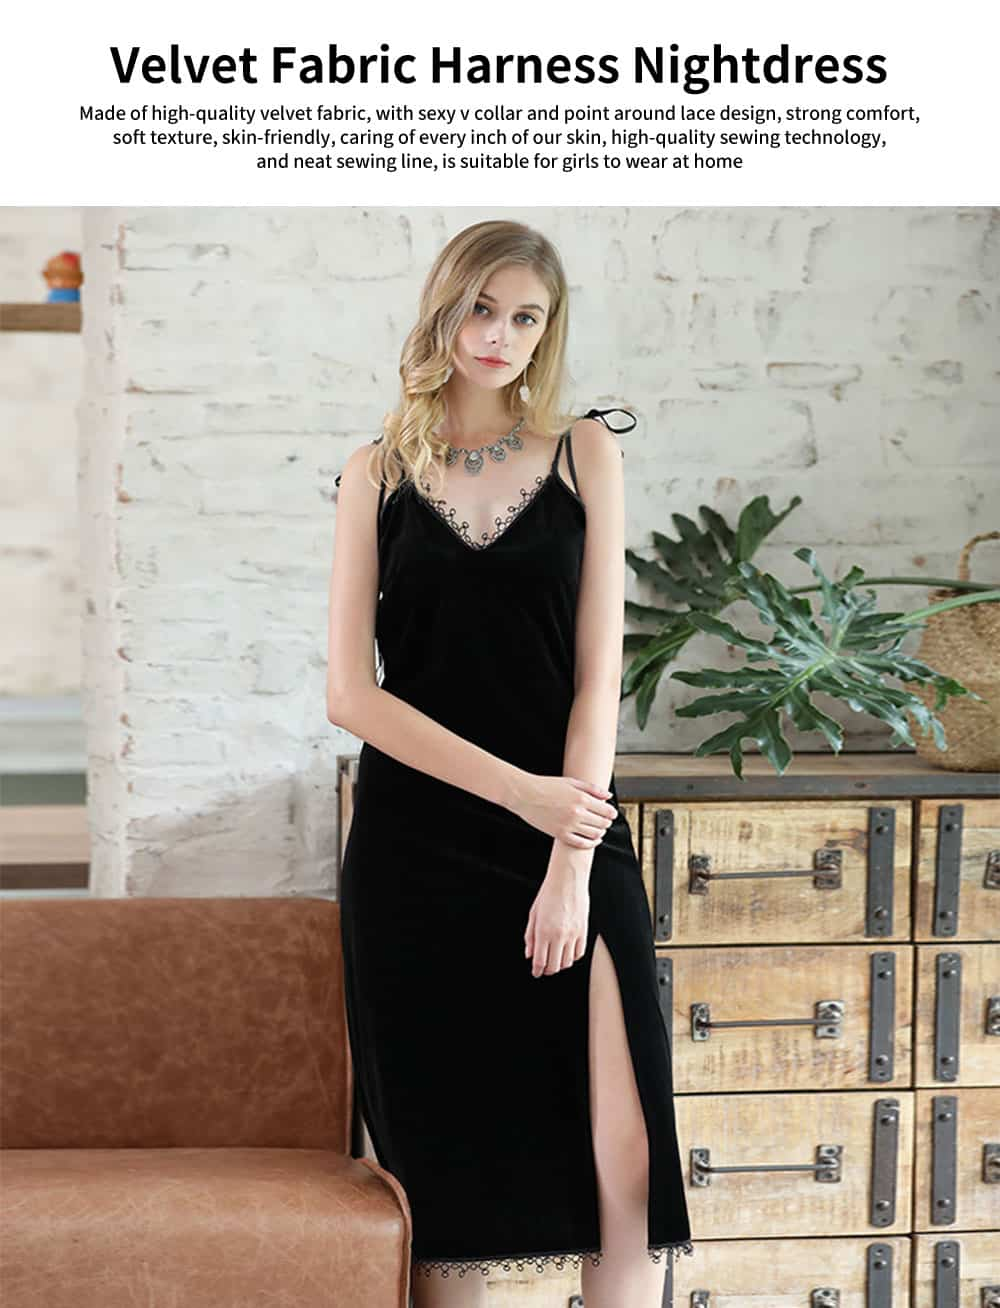 High-quality Velvet Fabric Harness Nightdress, Female Bare Back Sexy Lace V-neck Pajamas, with Shoulder Strap Design 0